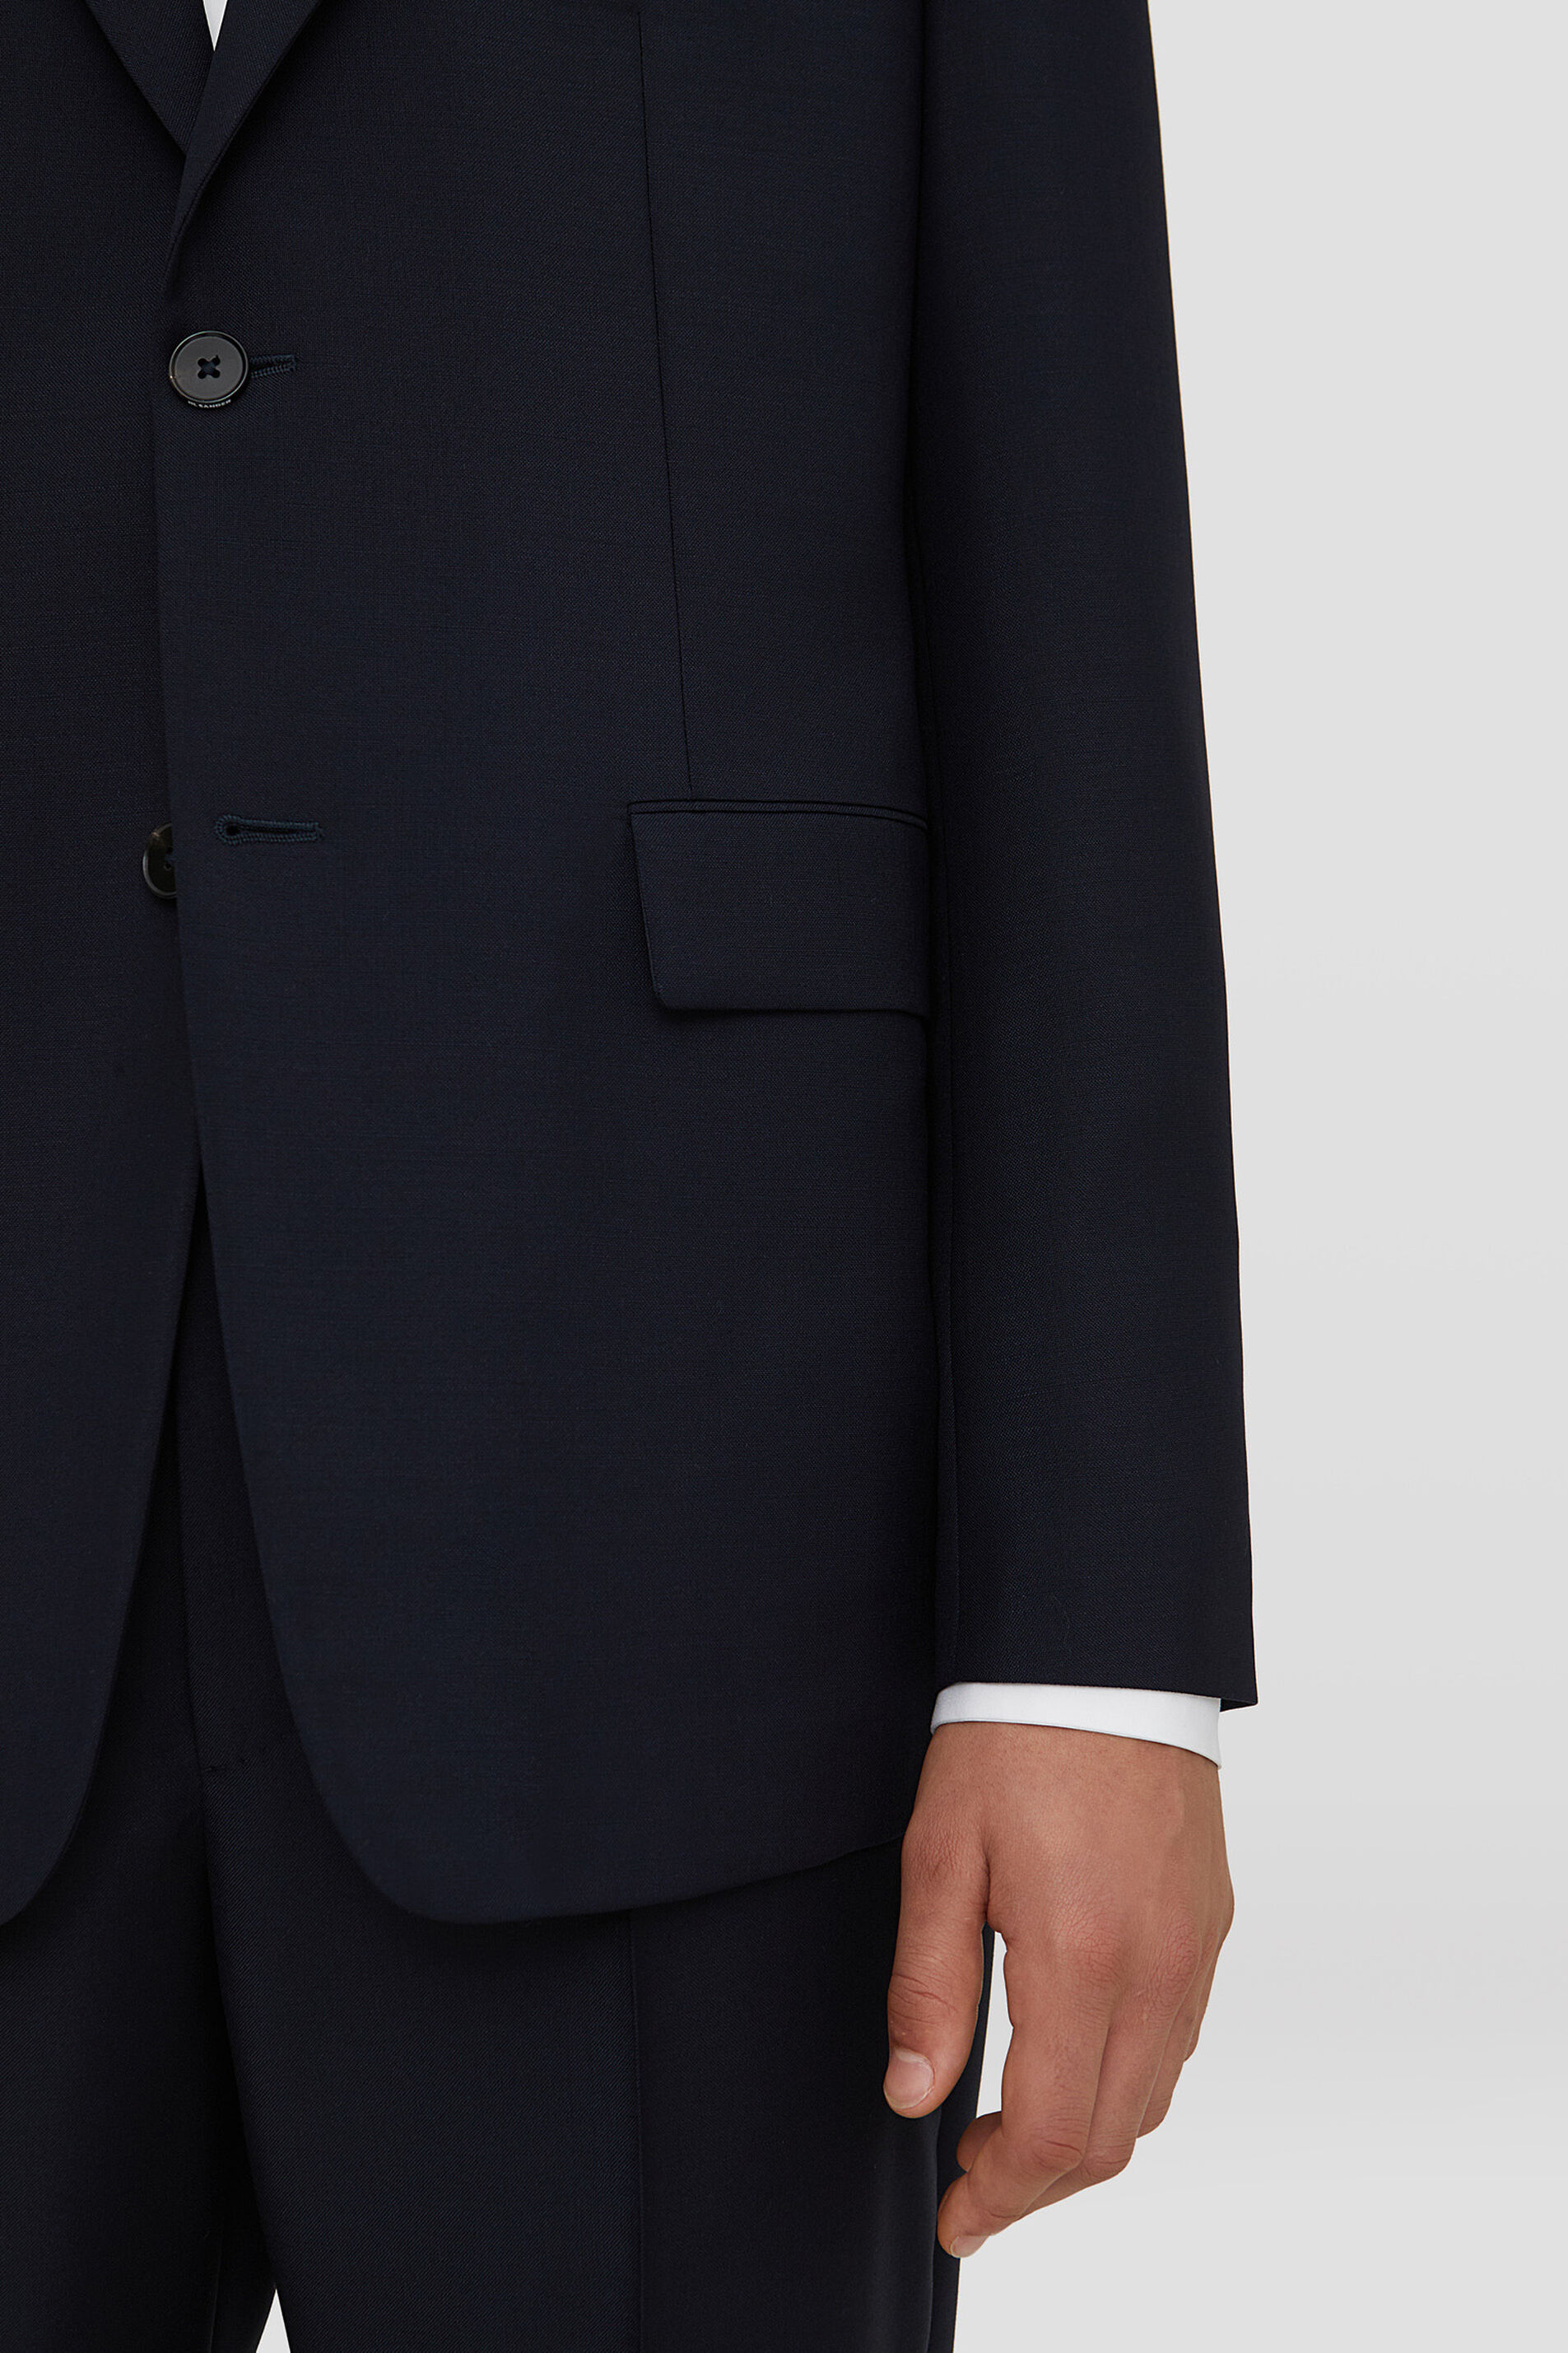 Suit, dark blue, large